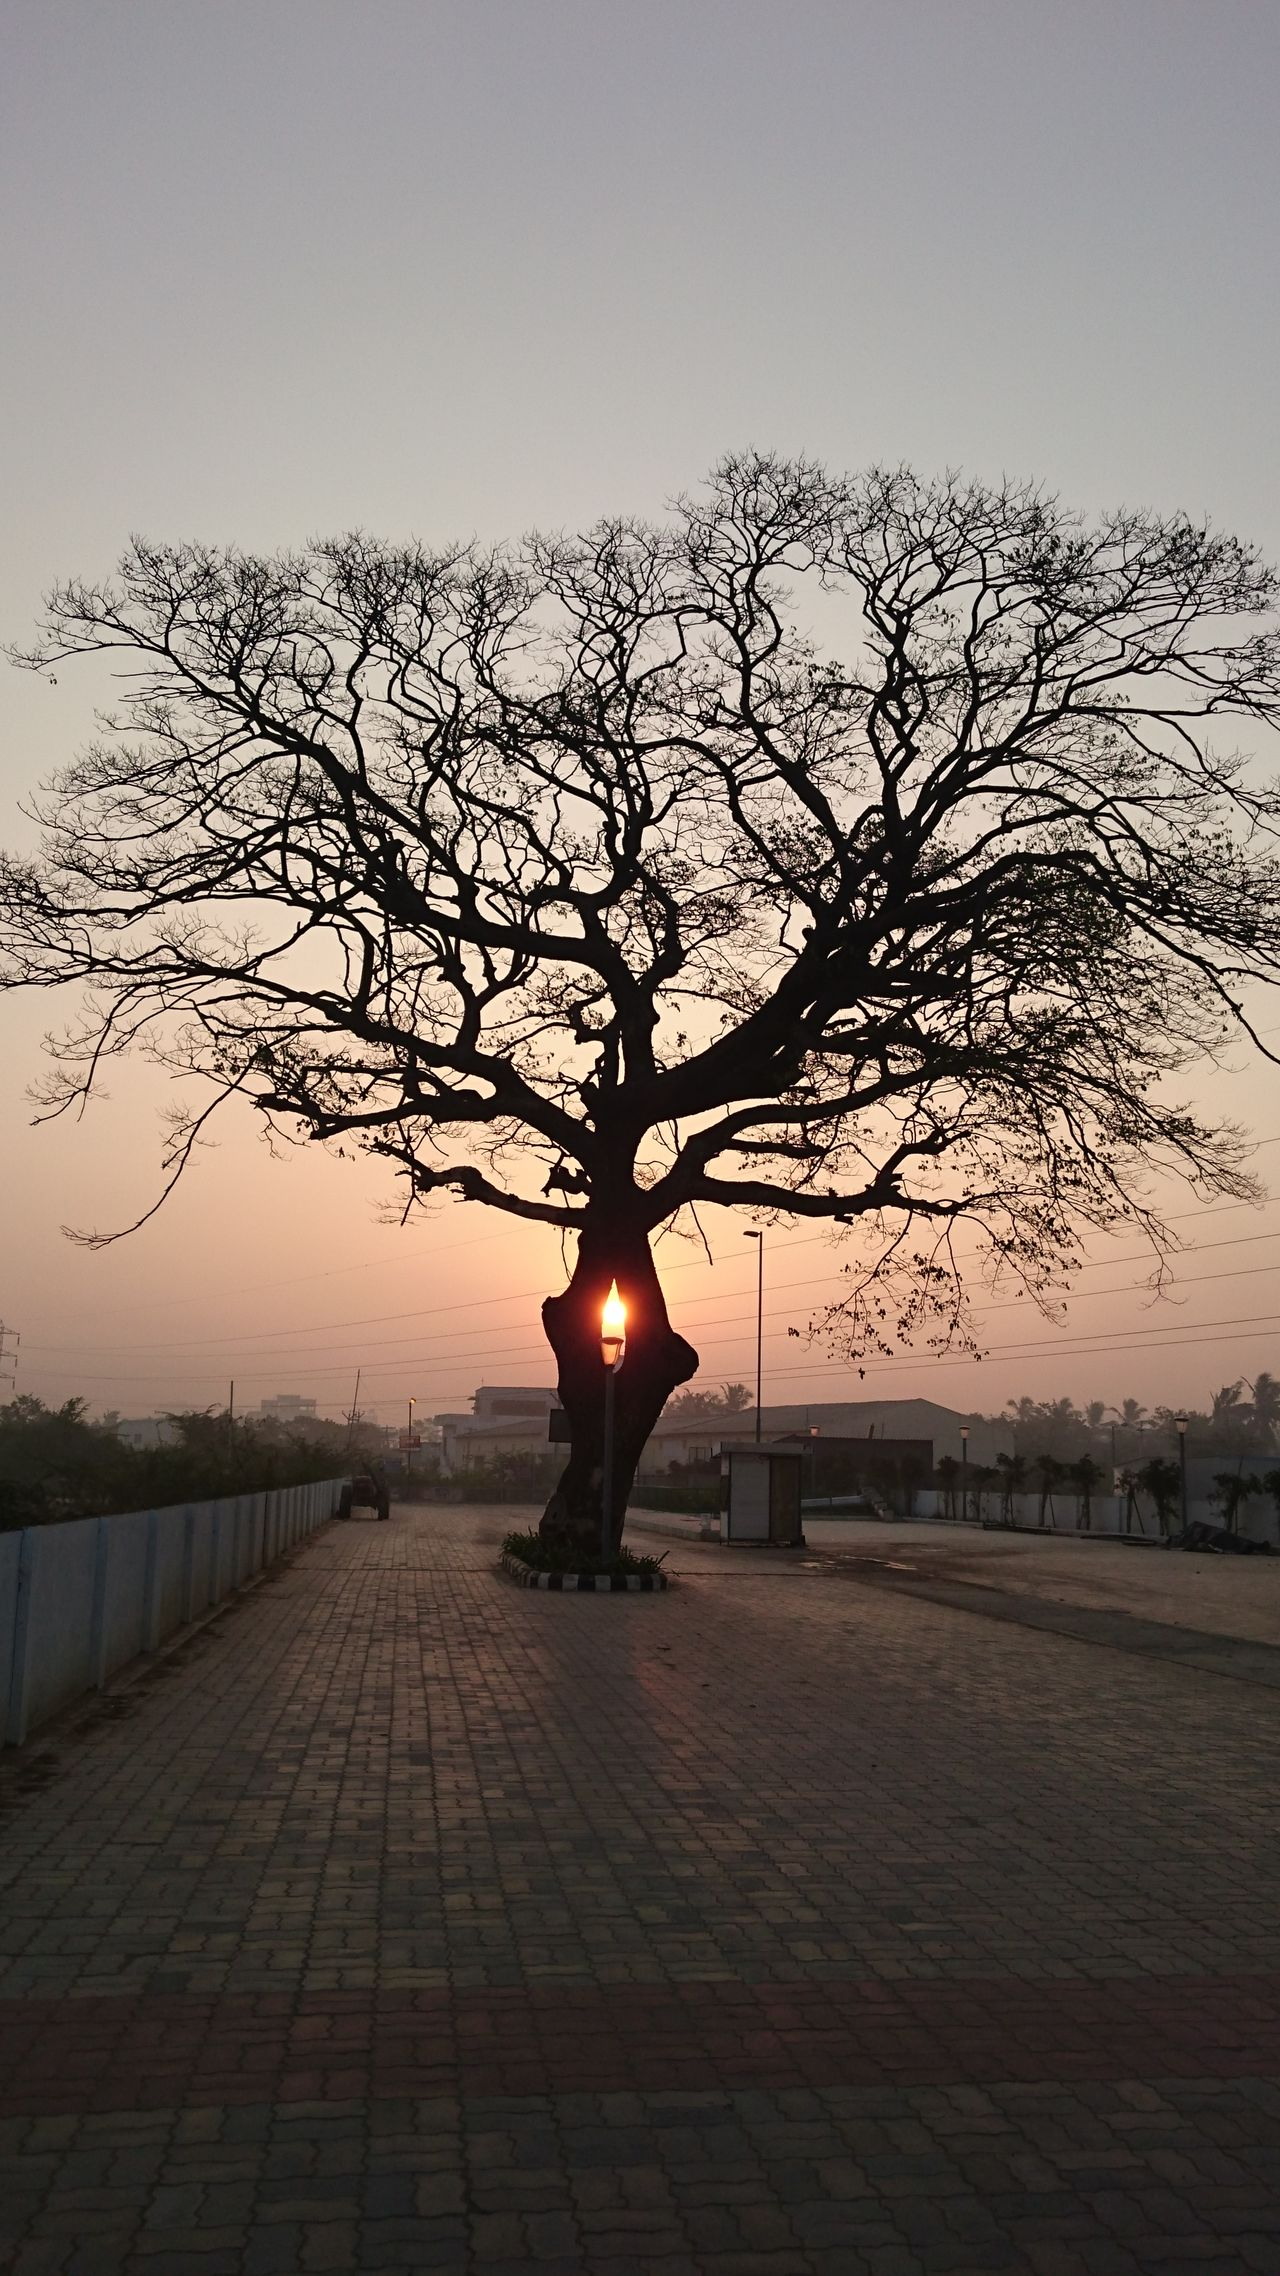 Architecture Bare Tree Day Nature No People Outdoors Sky The City Light Tree